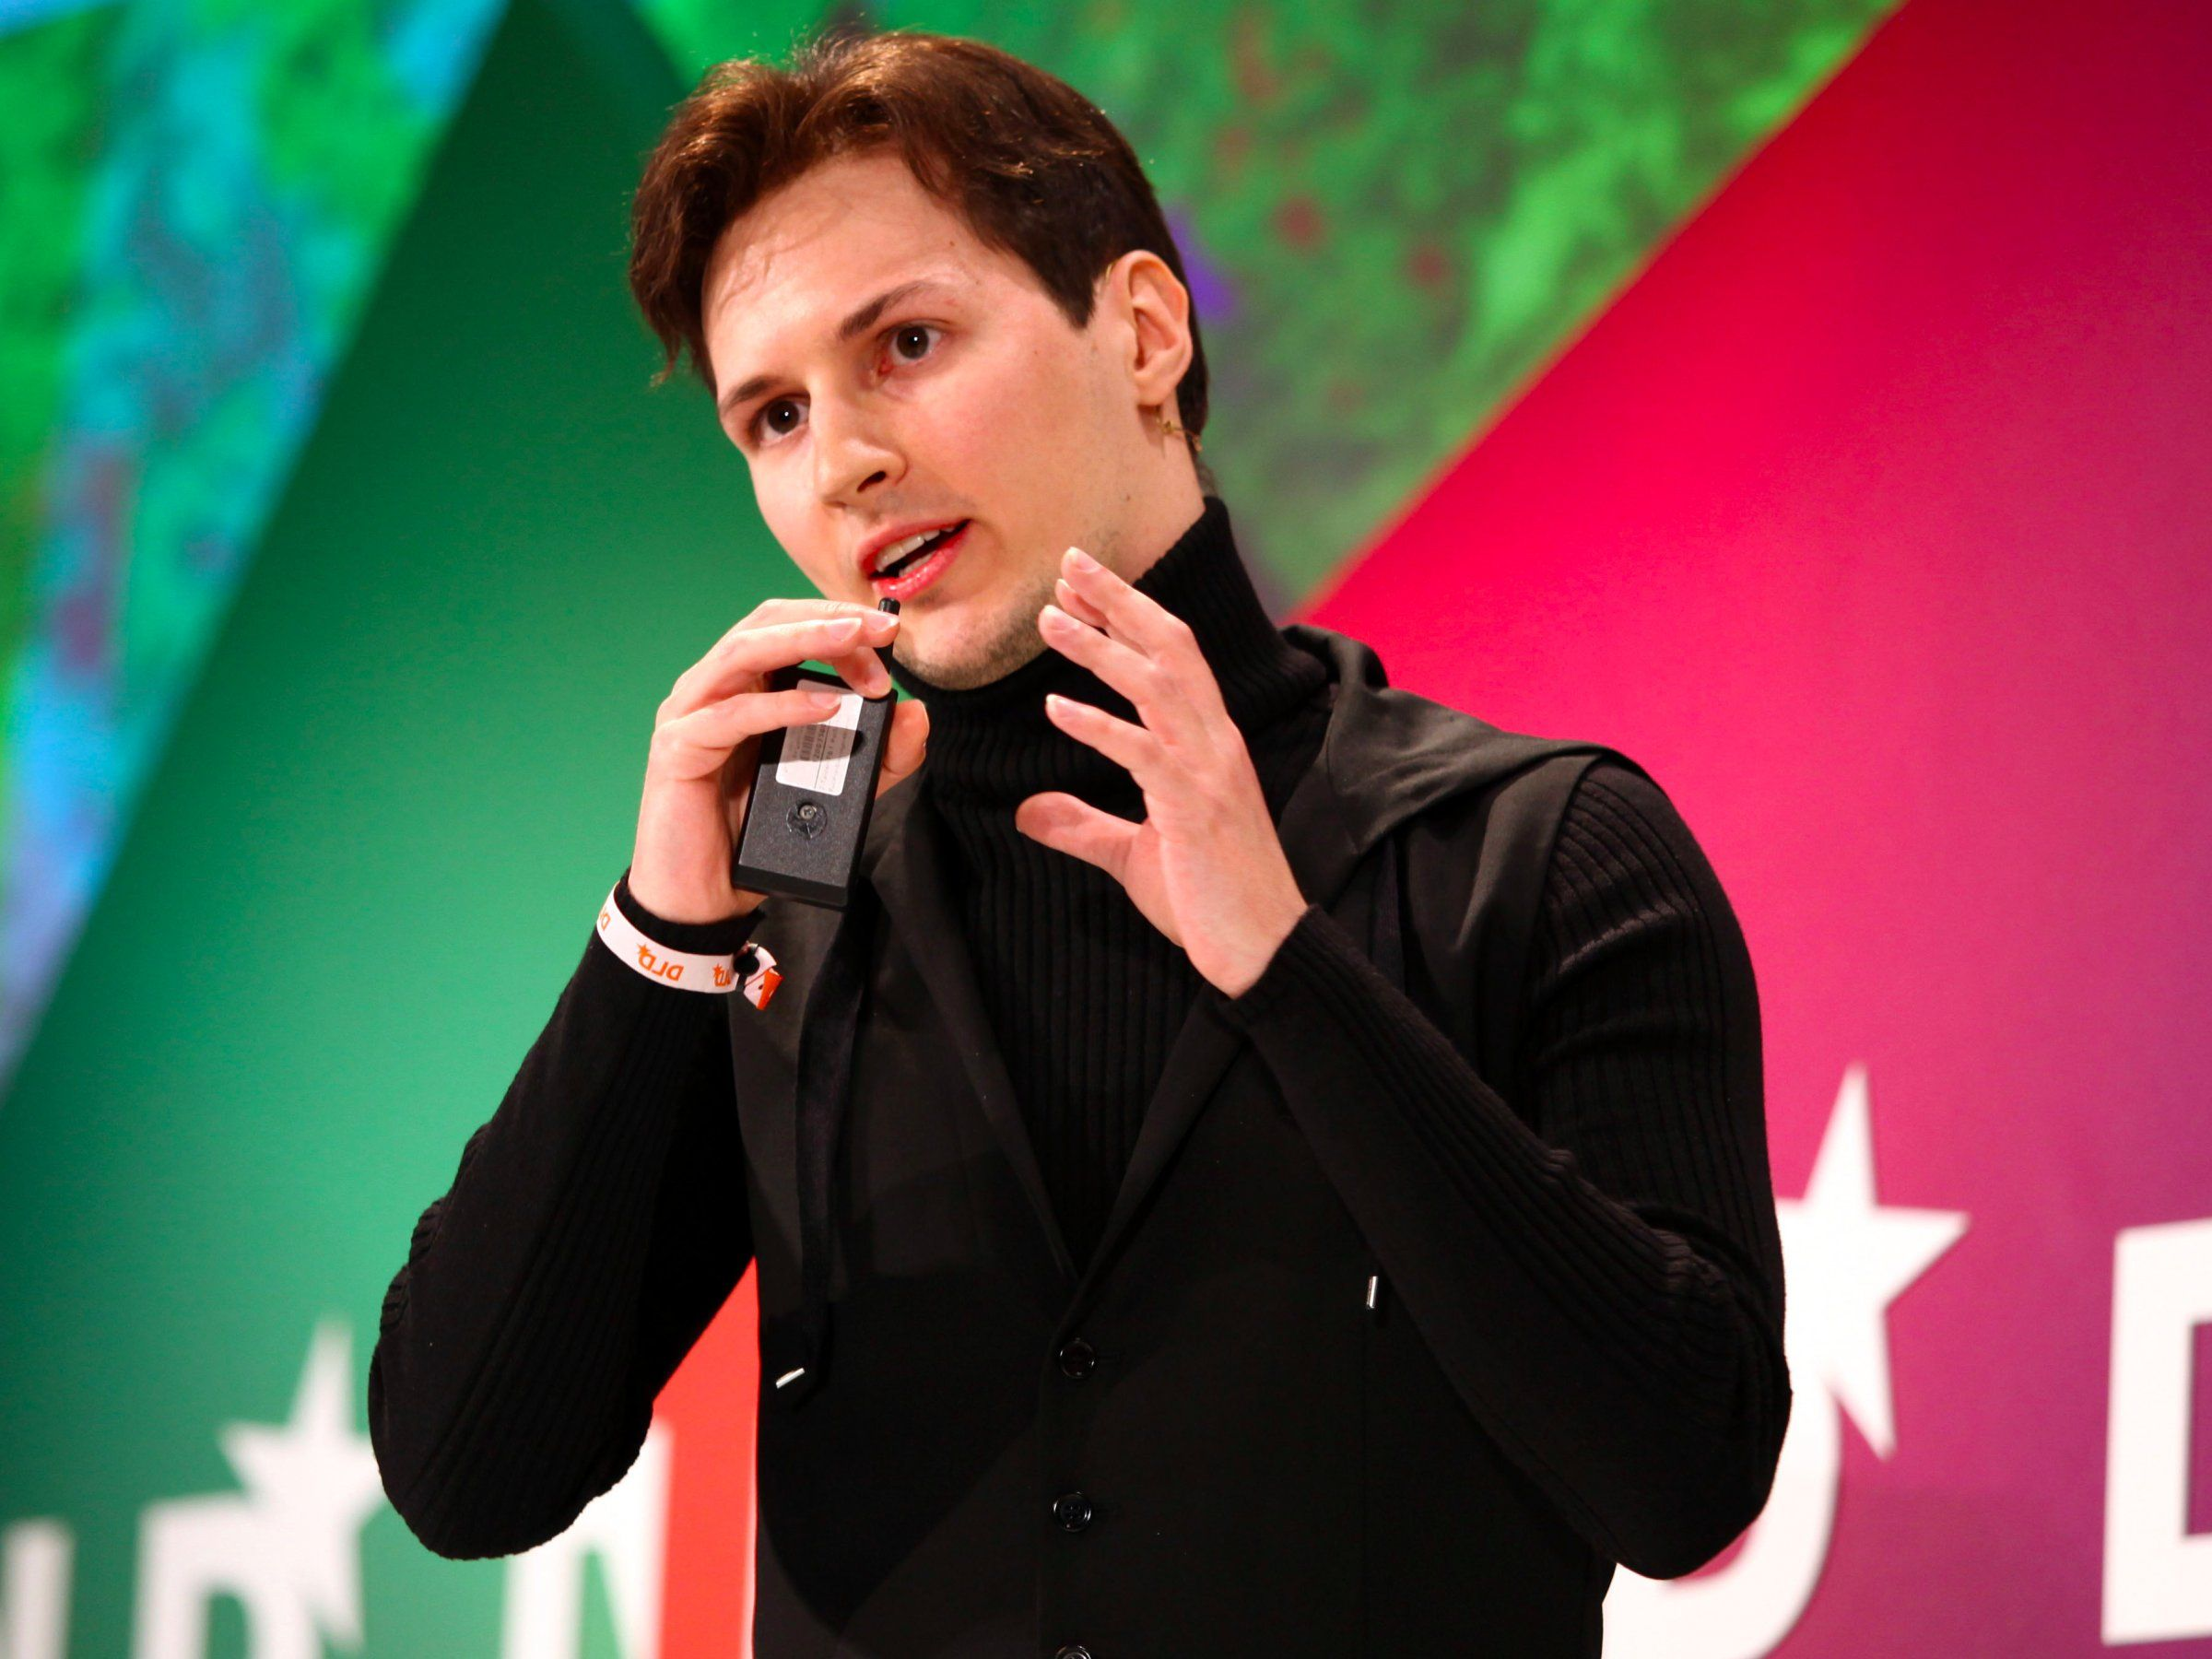 The founder of Telegram claimed the US tried to persuade him to